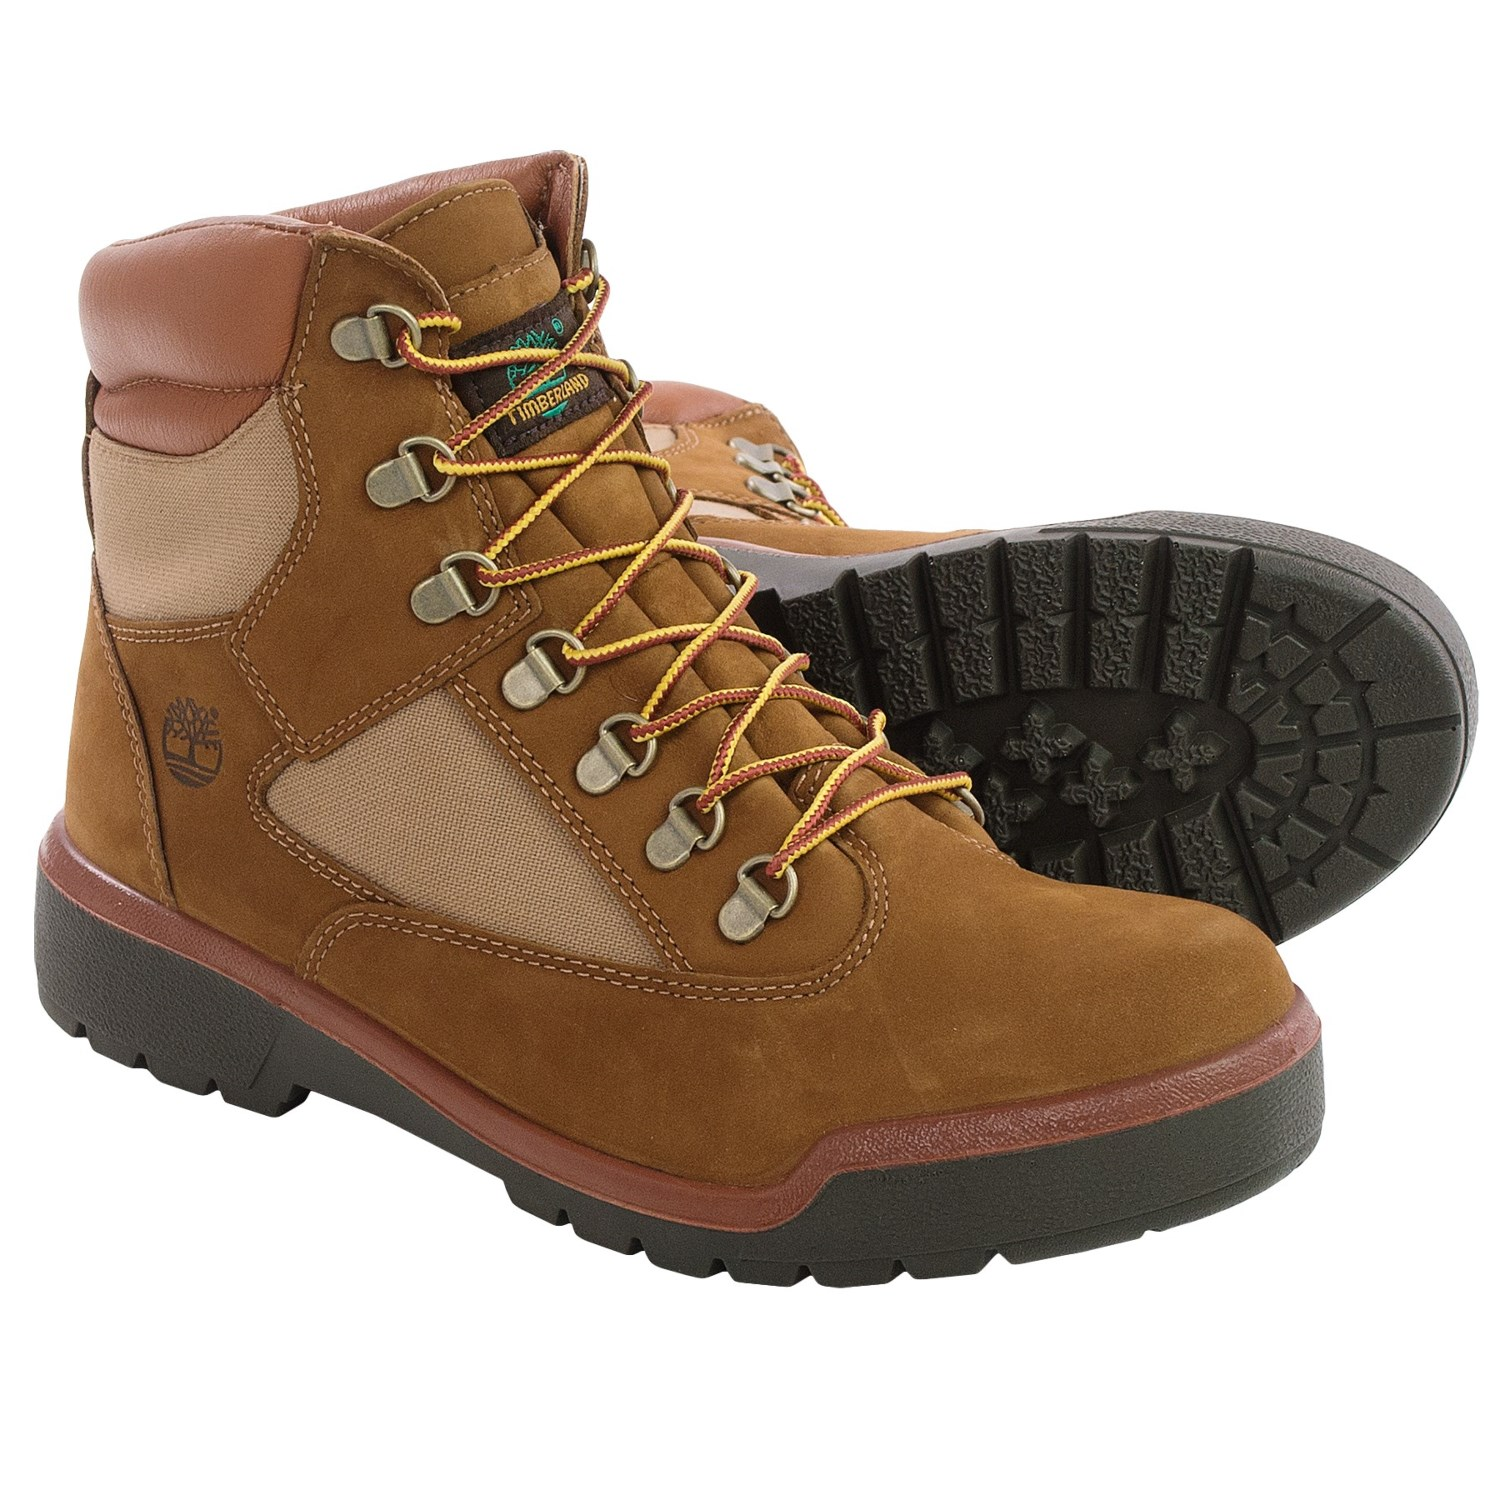 Free shipping and returns on women's boots at derfkasiber.ga, including riding, knee-high boots, waterproof, weatherproof and rain boots from the best brands - UGG, Timberland, Hunter and more.